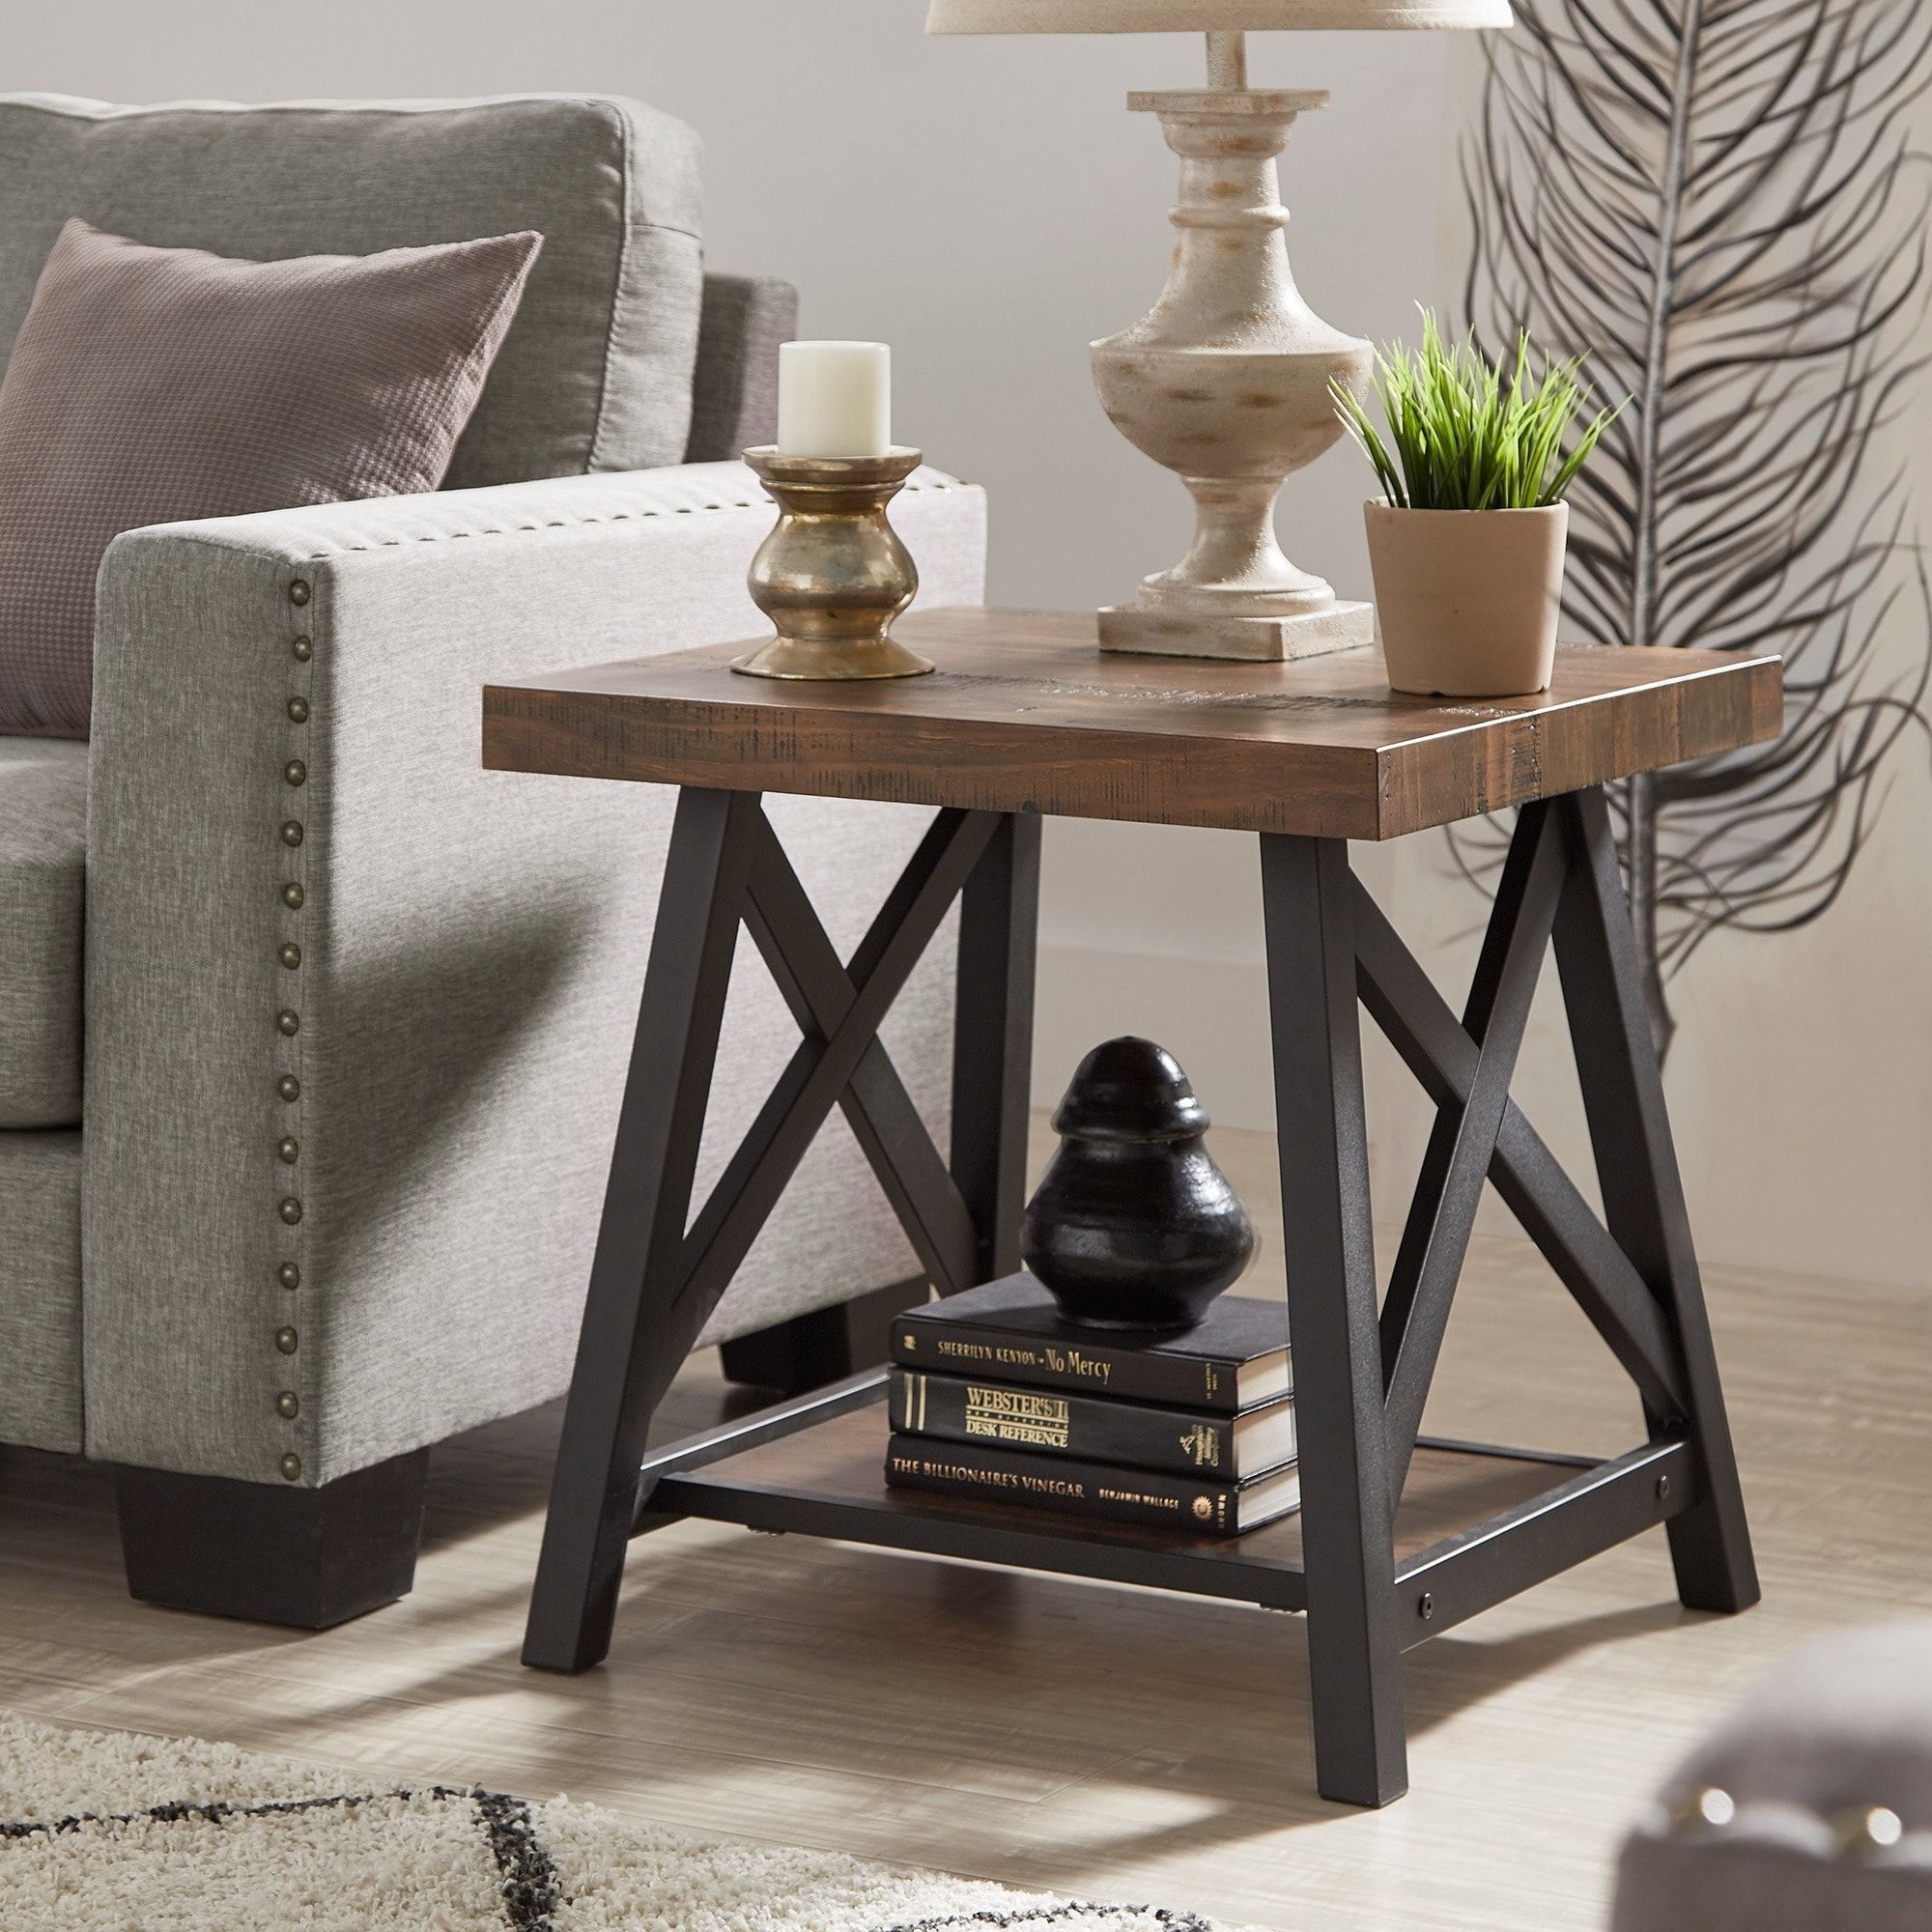 Bryson rustic xbase end table with shelf by inspire q classic